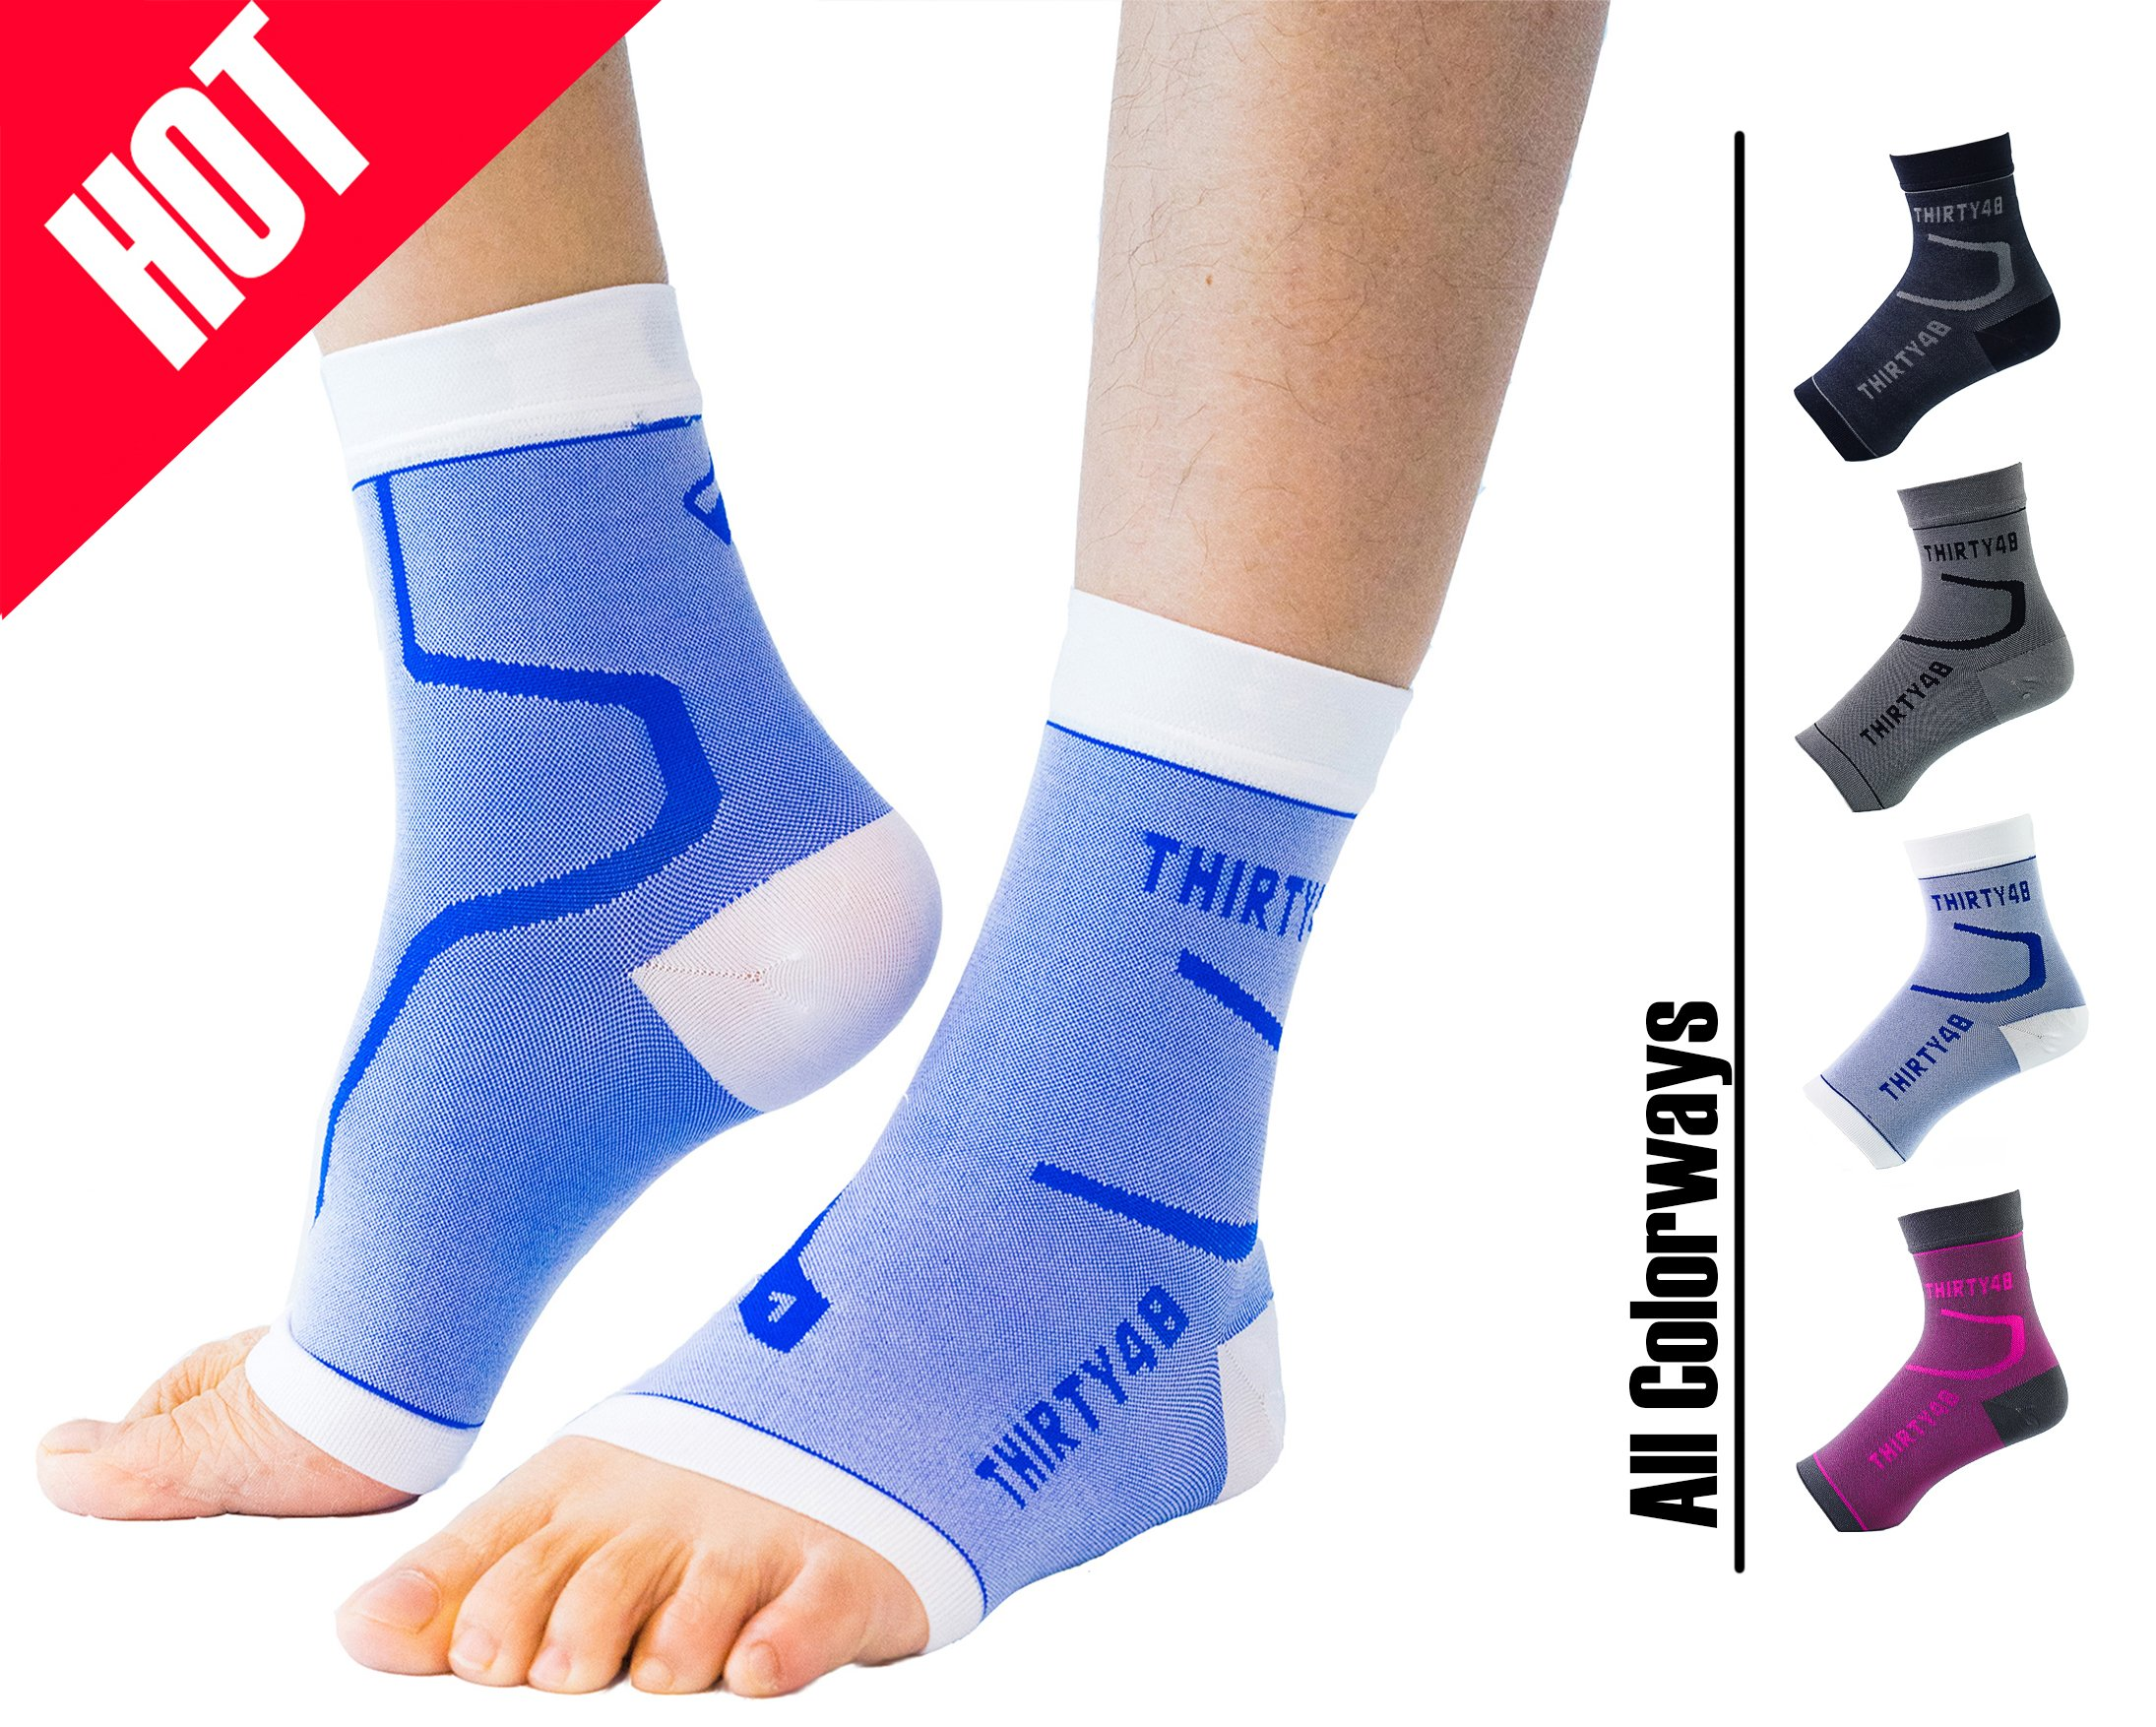 Thirty48 Plantar Fasciitis Socks, 20-30 mmHg Foot Compression Sleeves for Ankle/Heel Support, Increasing Blood Circulation, Relieving Arch Pain, Reducing Foot Swelling by Thirty48